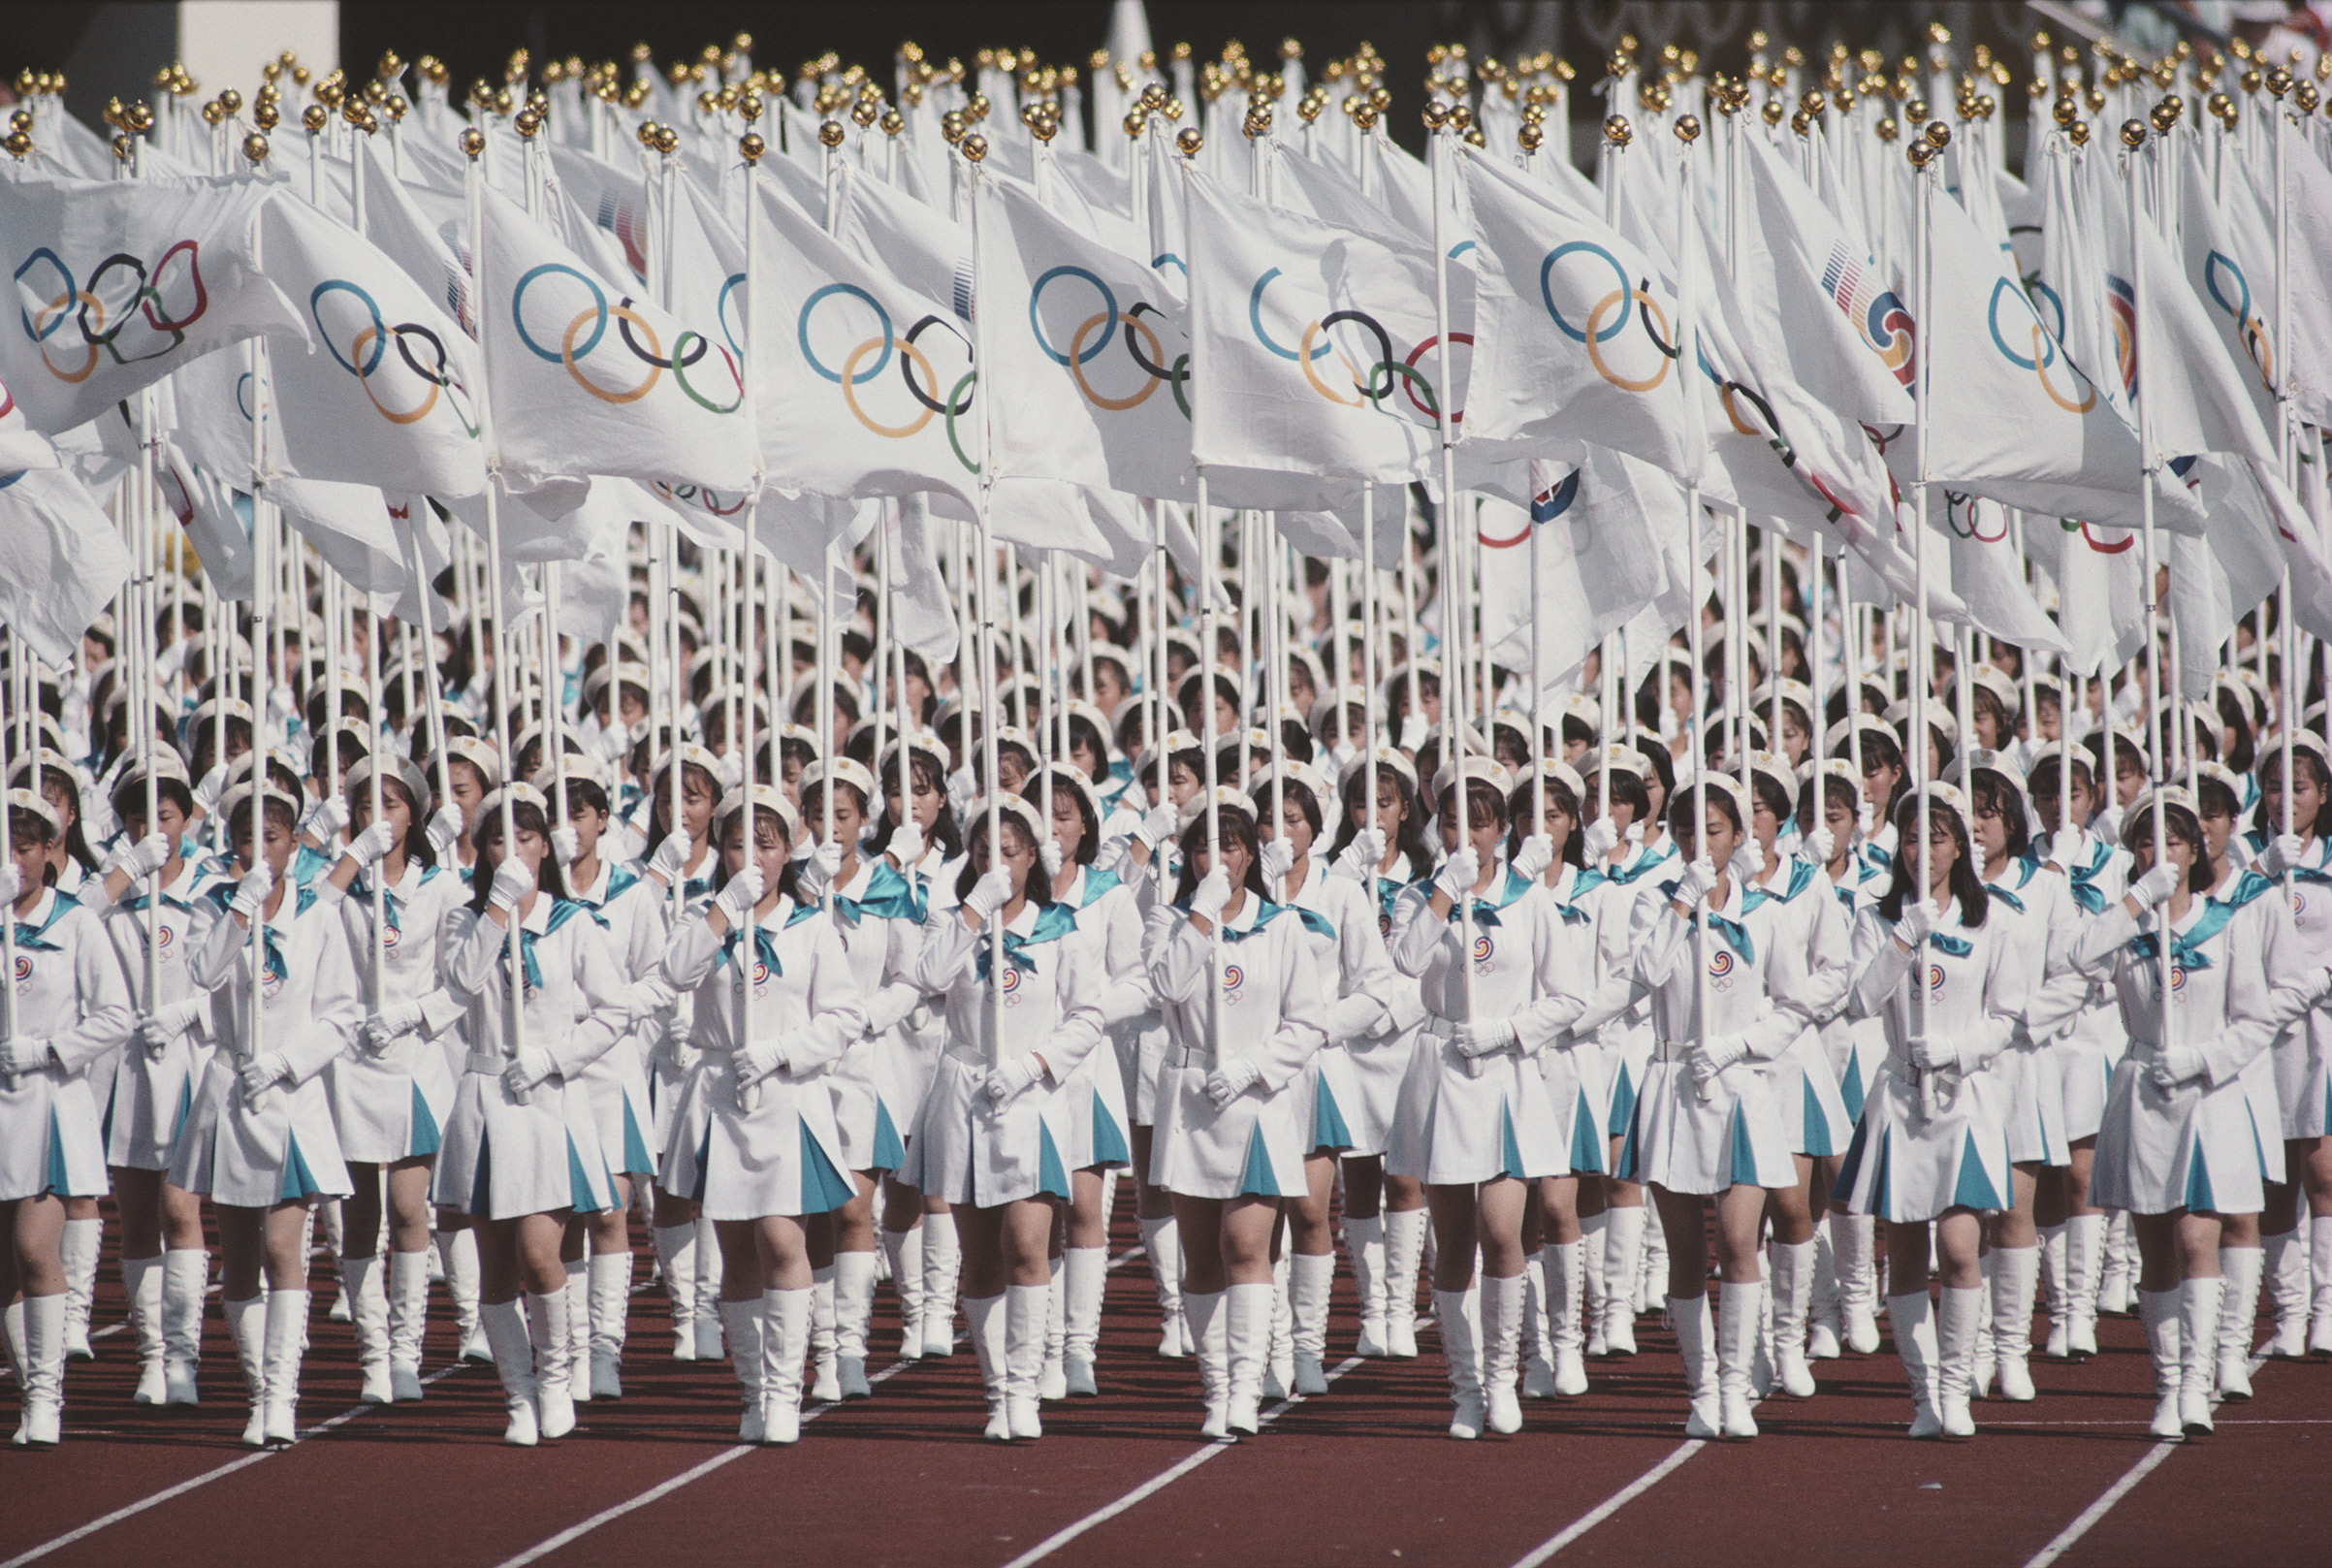 The Olympic Flag is presented in the Olympic Stadium during the Opening Ceremony of the XXIV Summer Olympic Games on Sep. 17, 1988, at the Seoul Olympic Stadium in Seoul, South Korea.